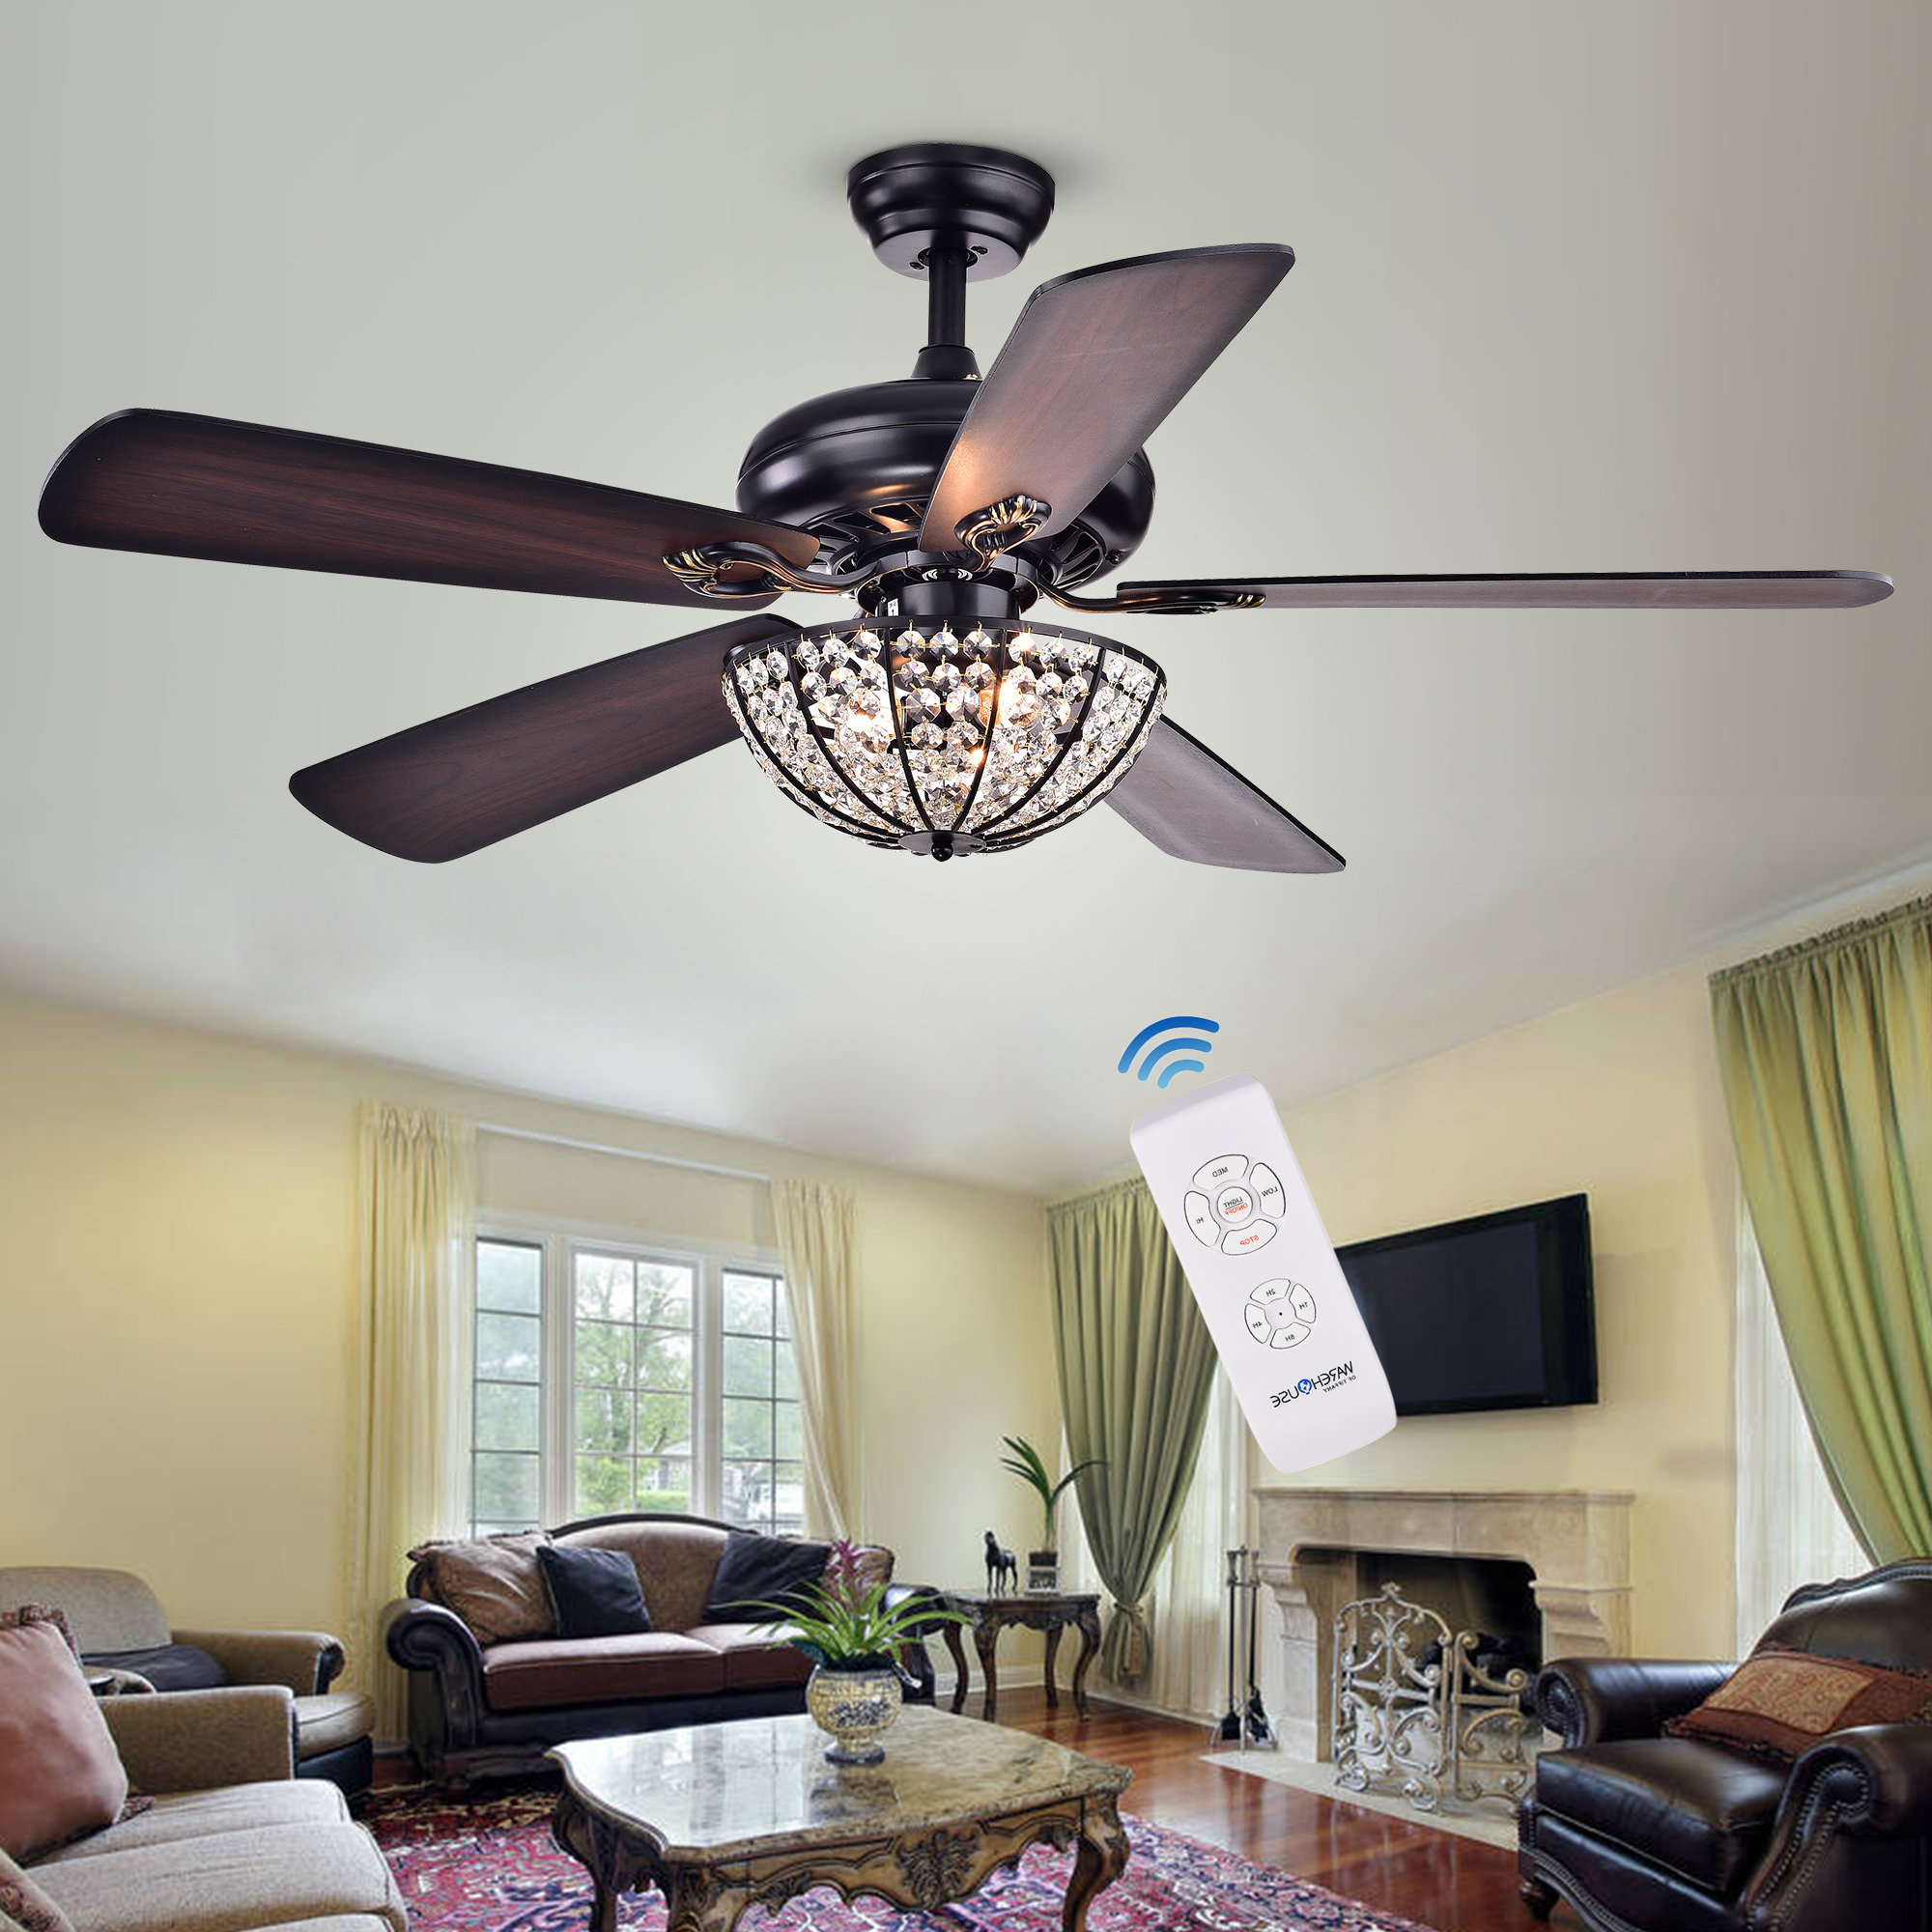 Most Recent 5 Blade Ceiling Fan Regarding Dunaghy 5 Blade Ceiling Fans (View 13 of 20)